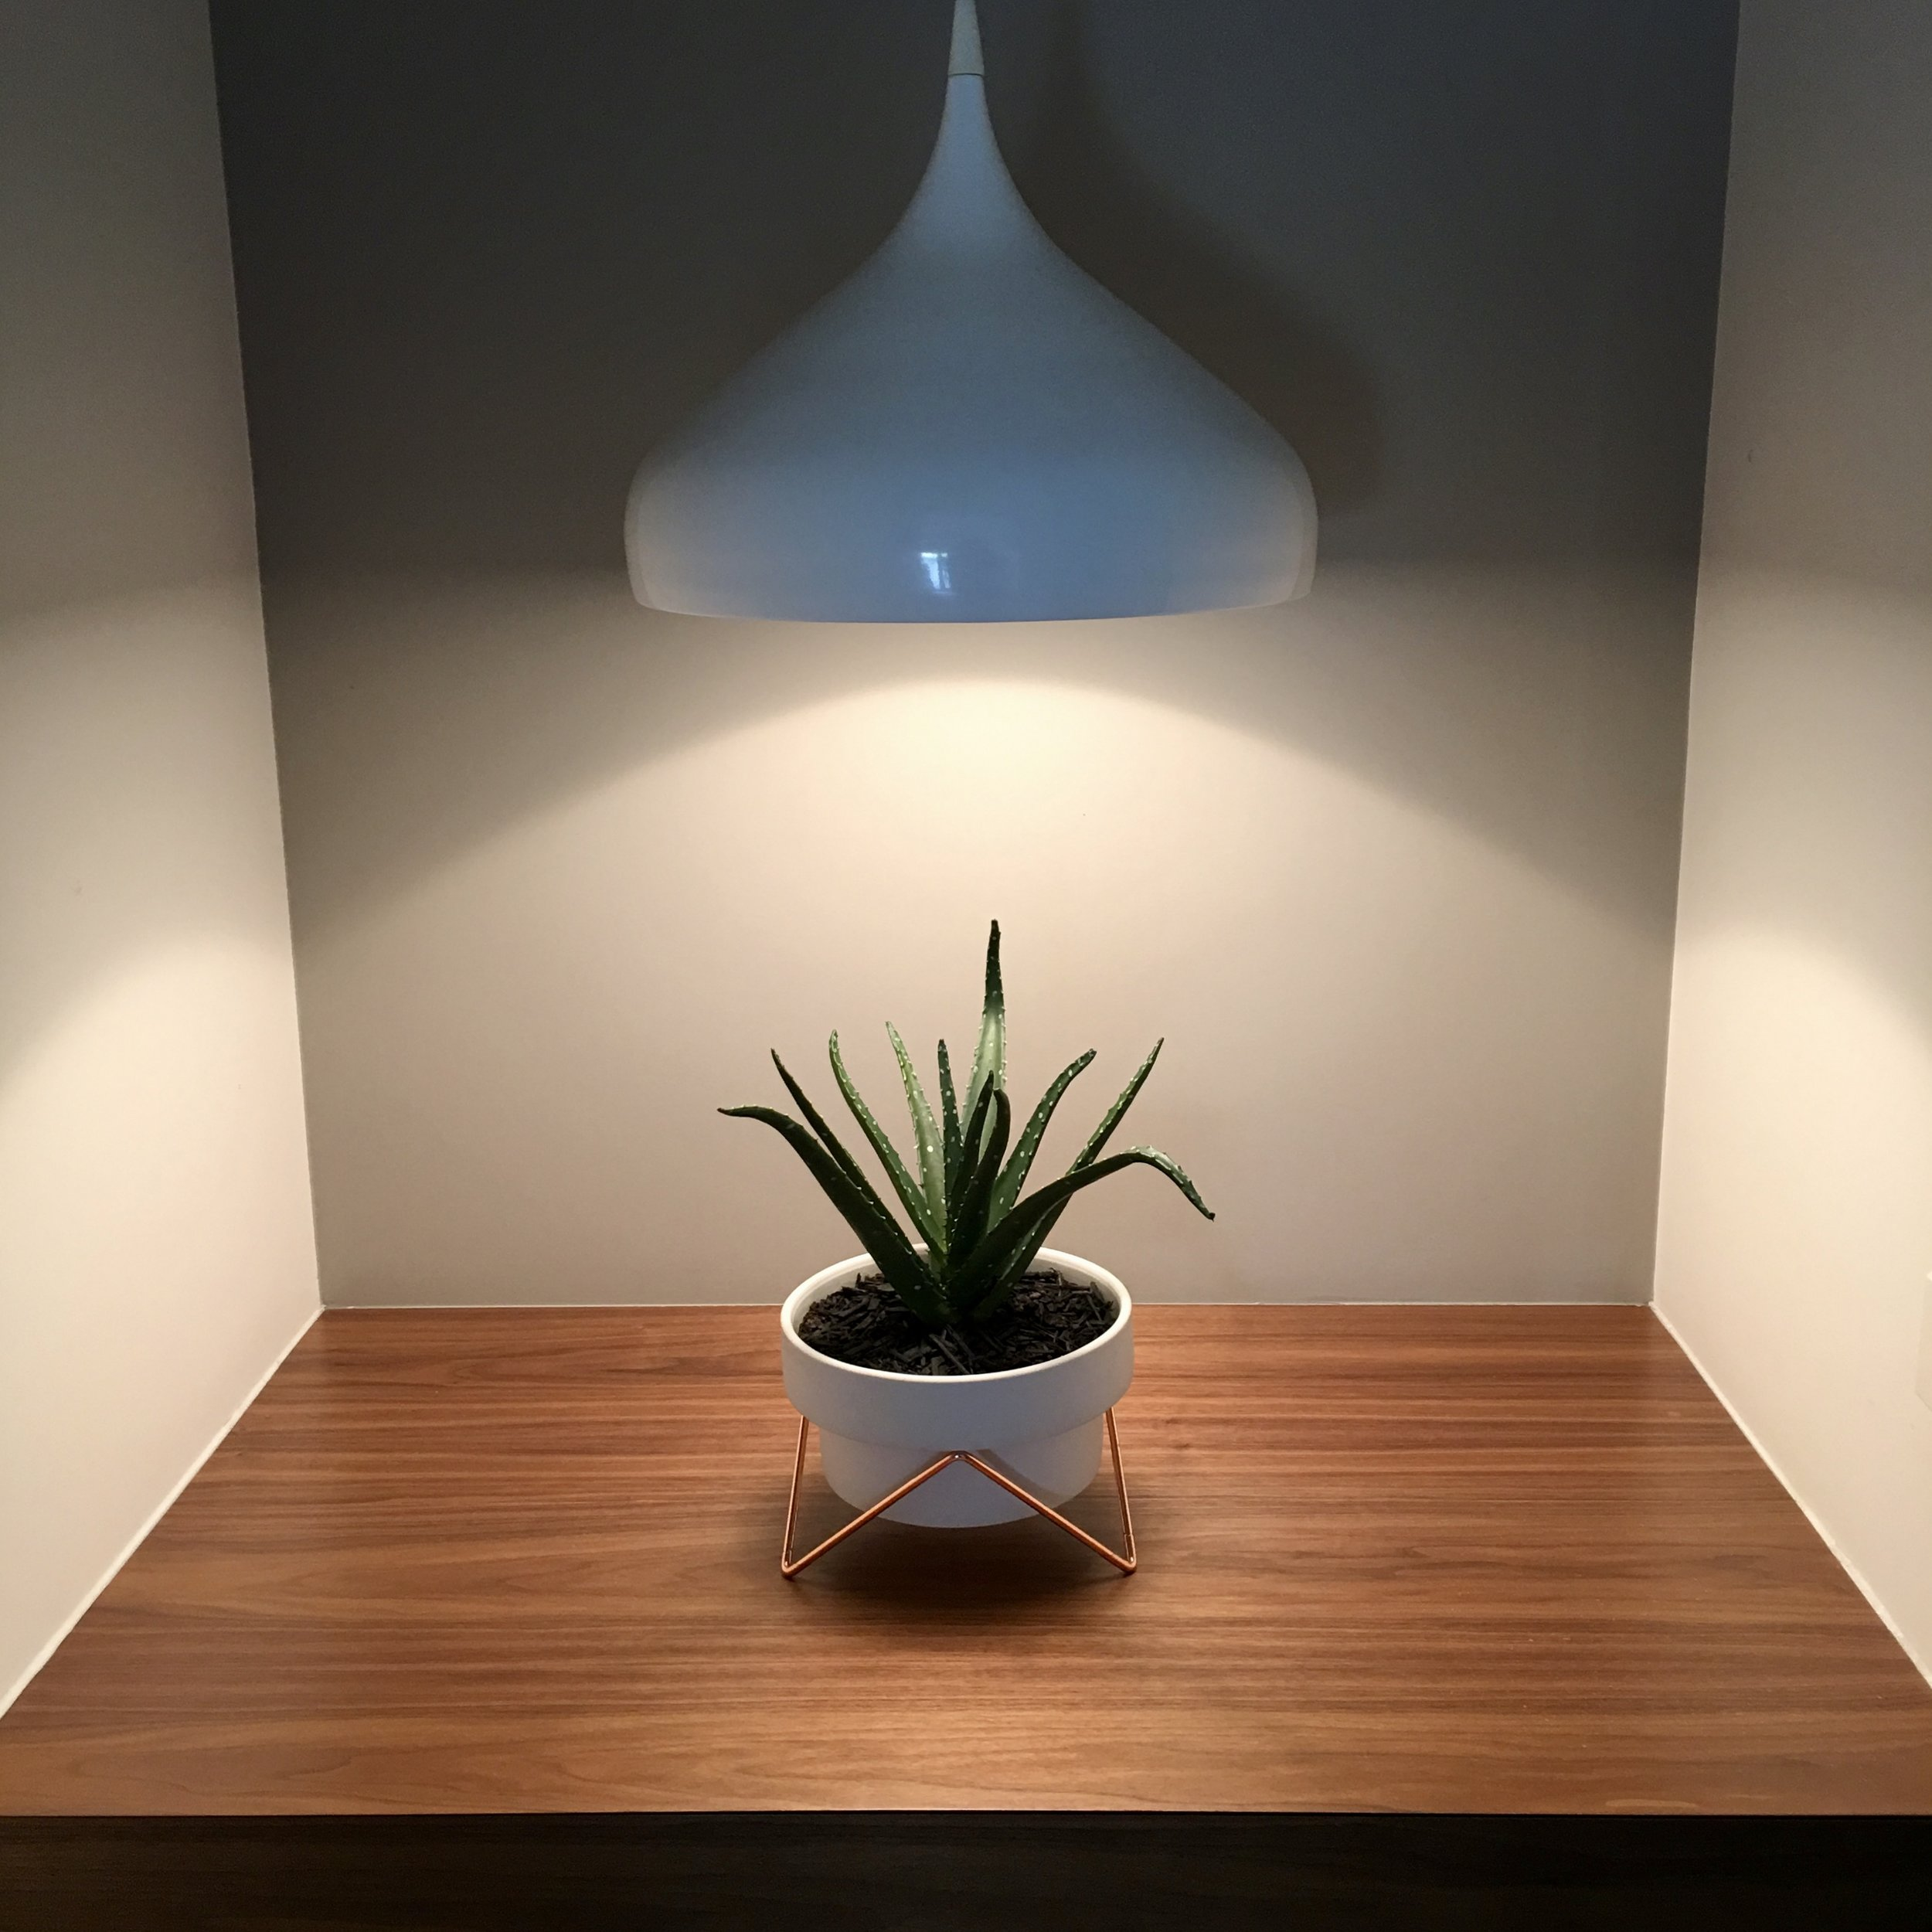 It's not just about the Botanics - We place just as much importance on selecting the right accessories because after all, it's about making plants a design feature. With a strong focus on contemporary styling, all our pots & stands are sourced from manufacturers that adopt a clean & minimal design philosophy that works beautifully in contemporary urban interiors.